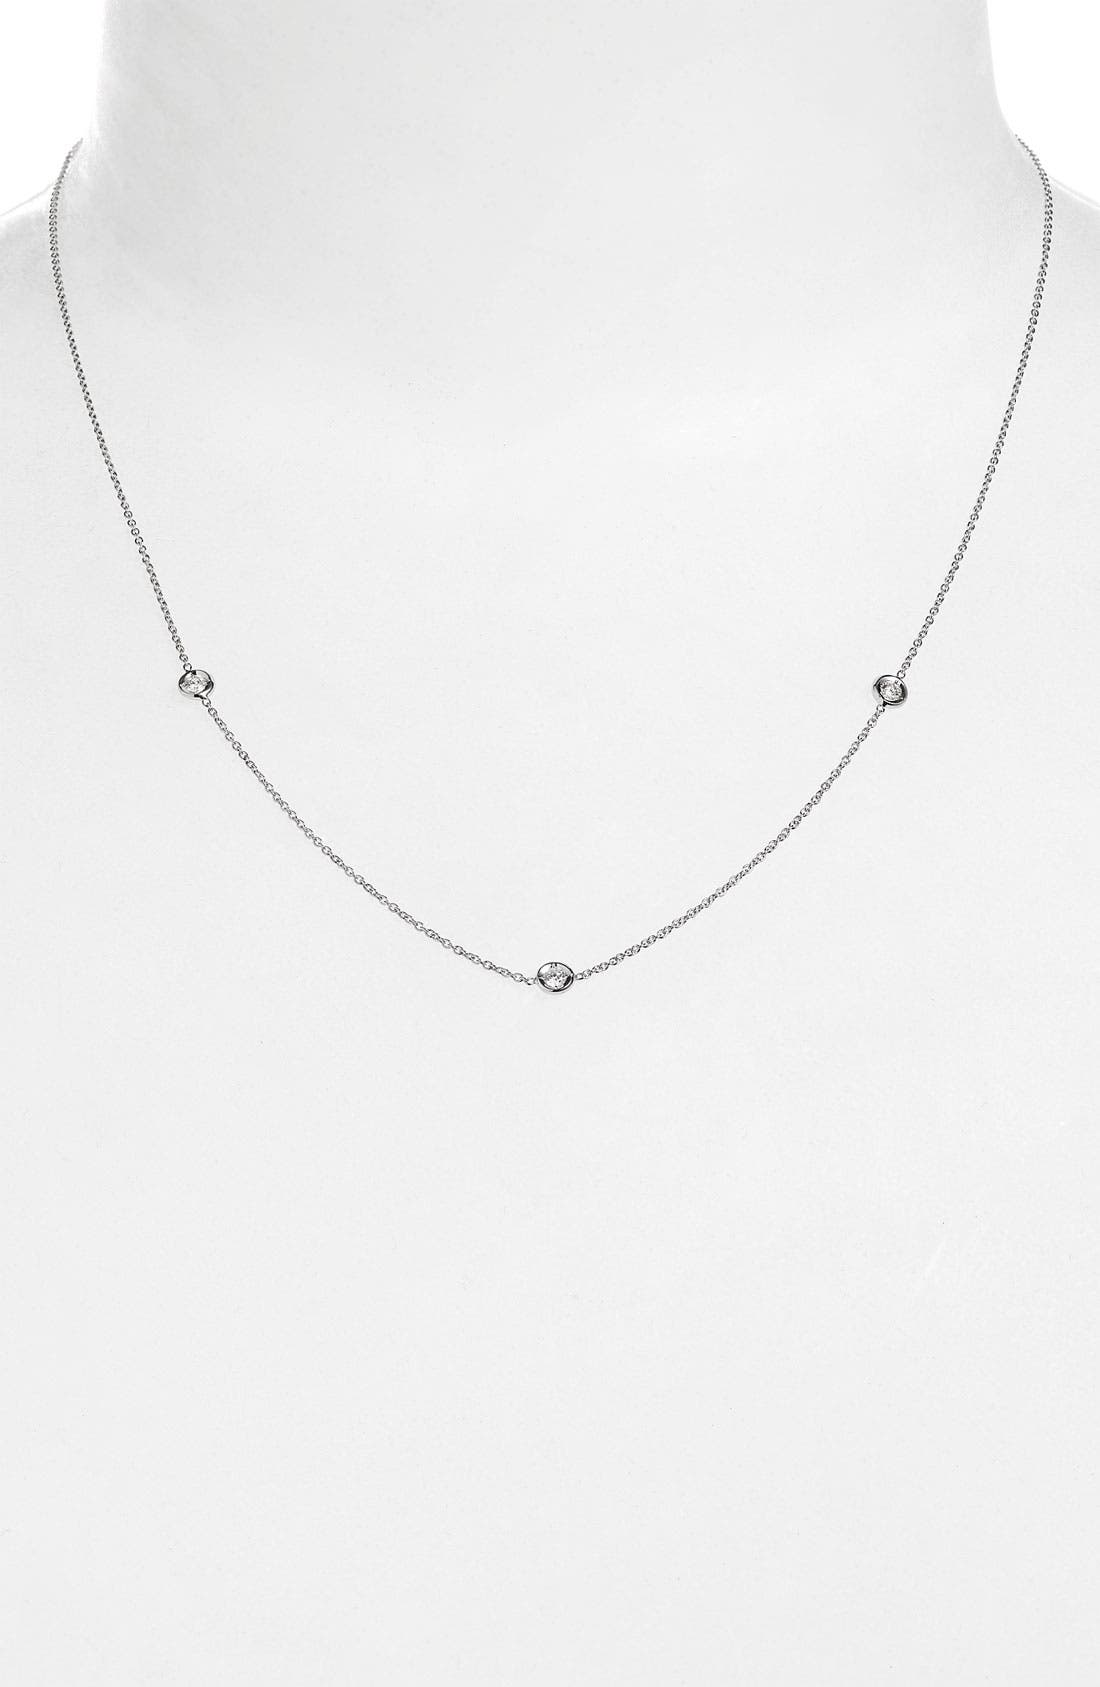 Main Image - Roberto Coin Diamond Station Necklace